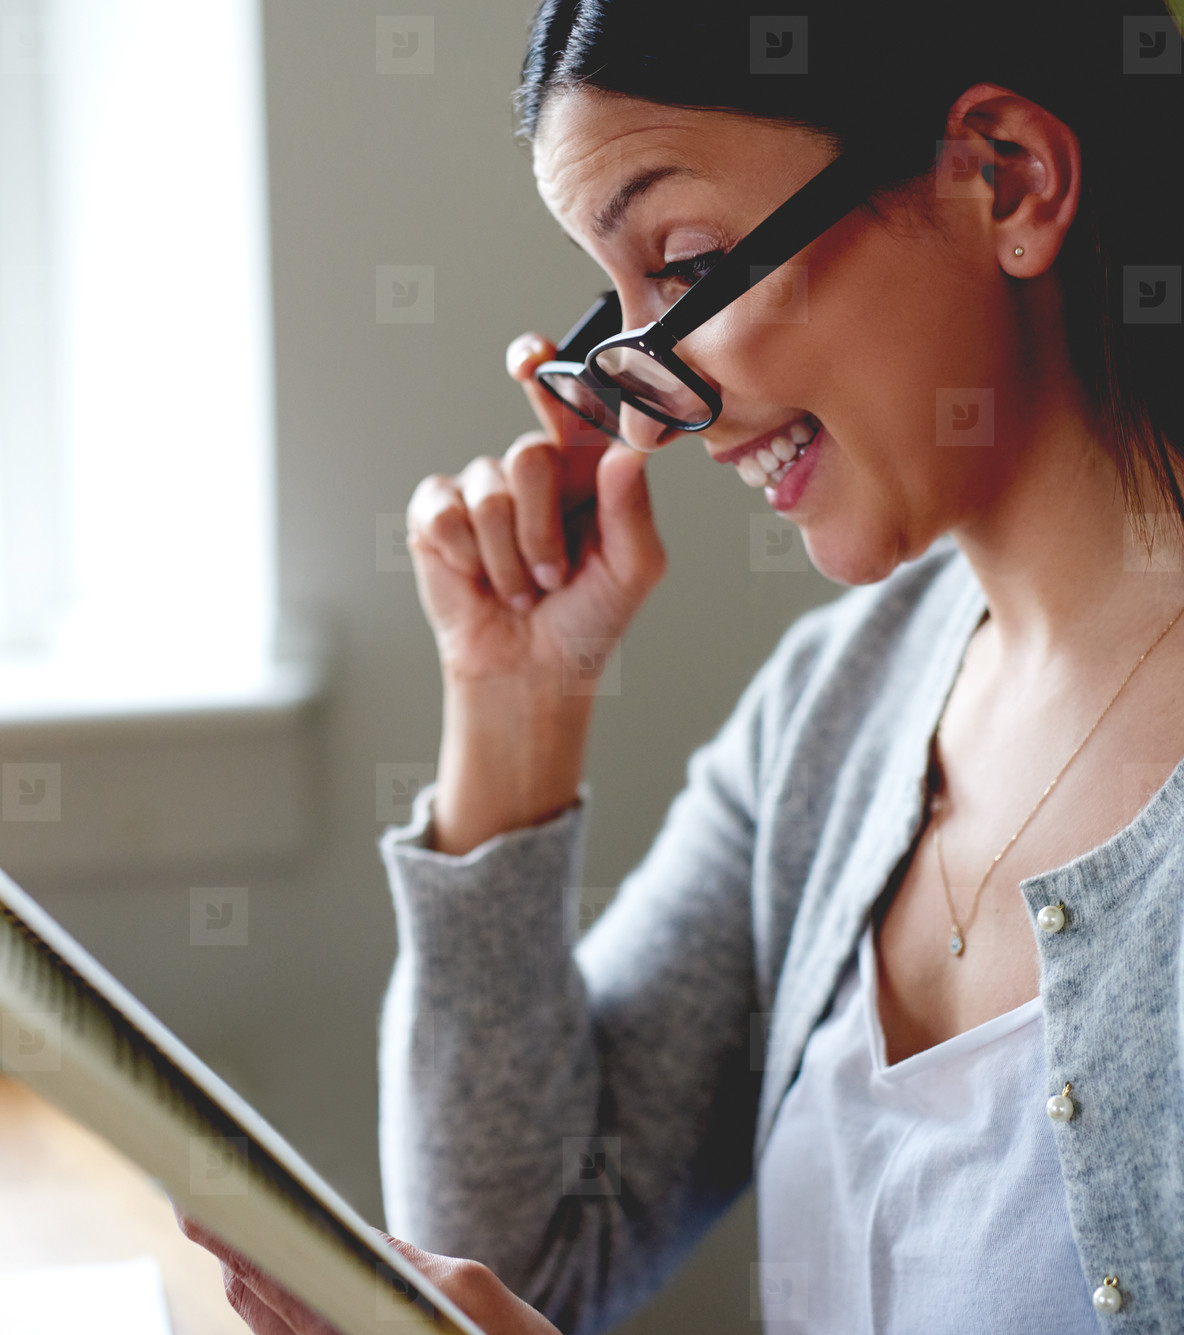 Woman pulling down glasses while reading book